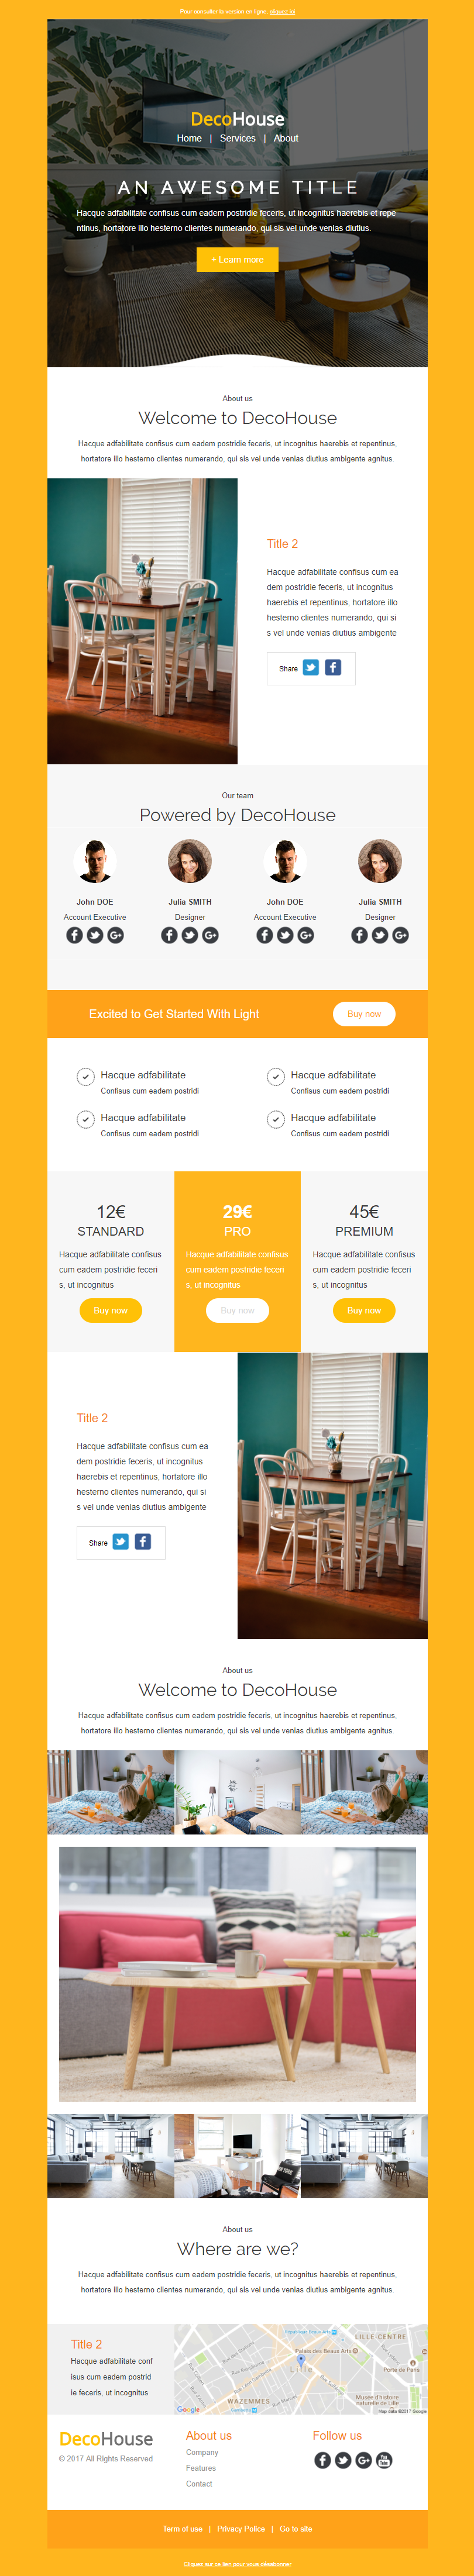 Exemple newsletter Decohouse